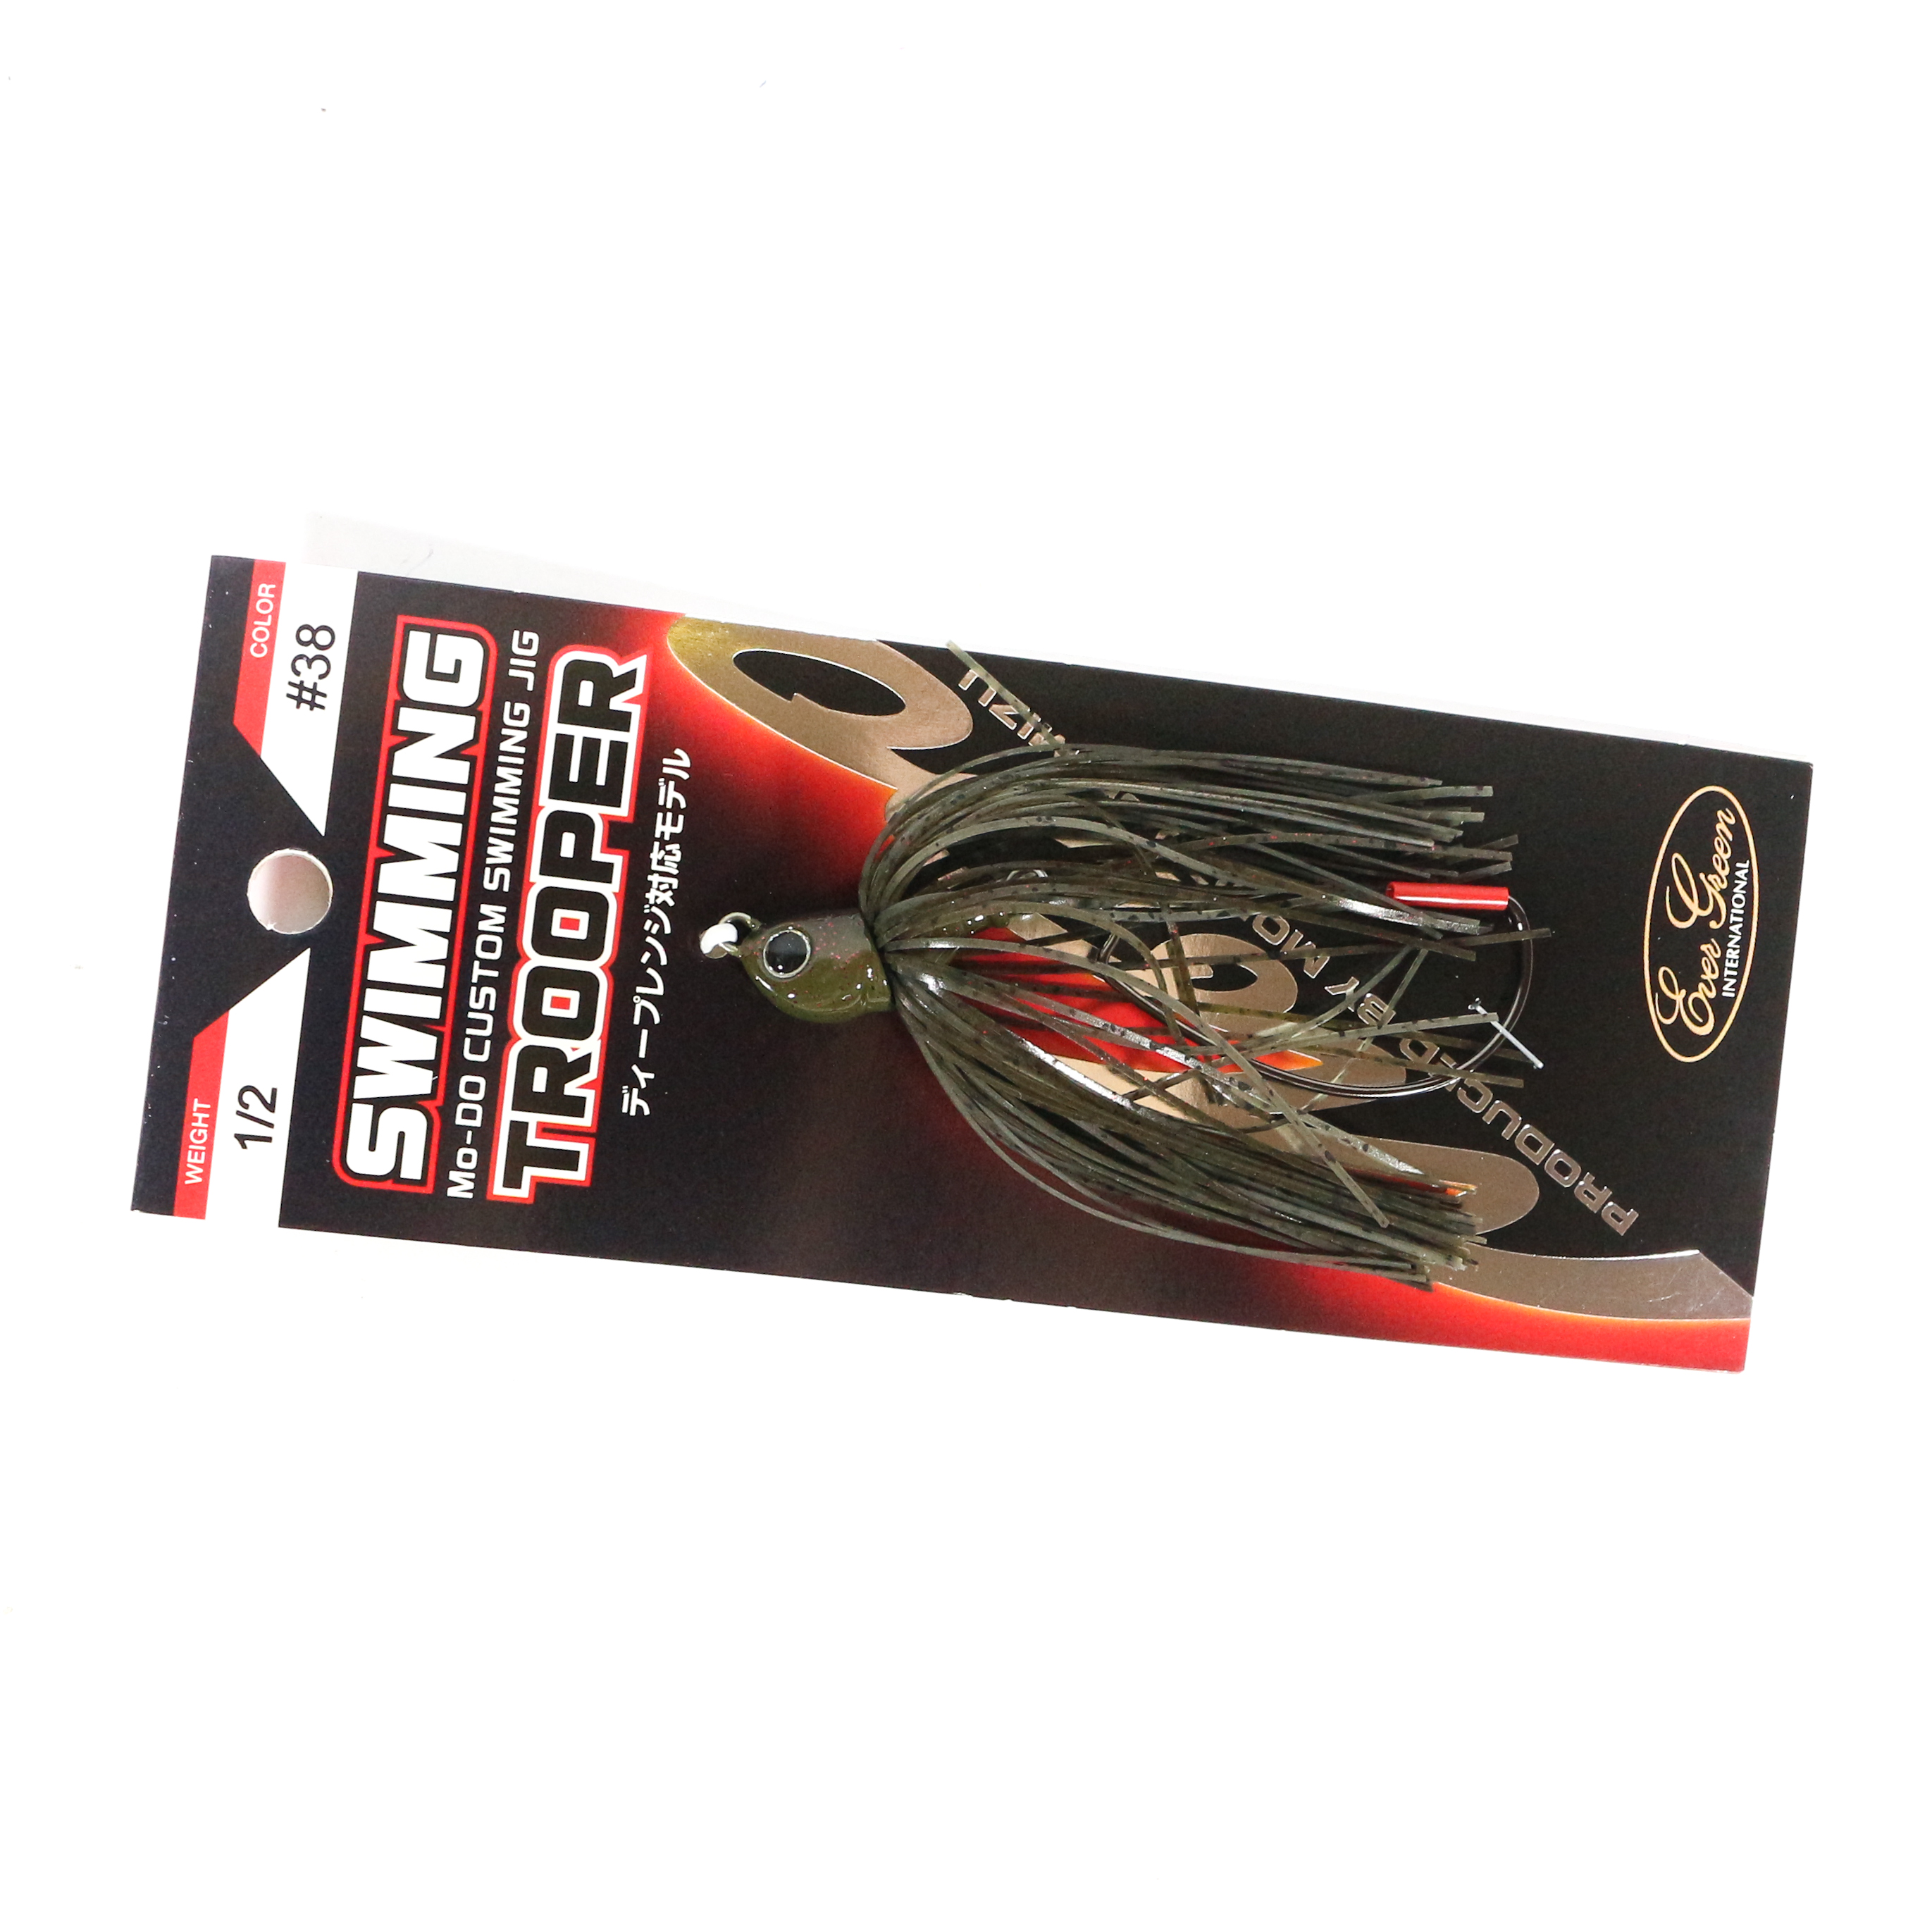 Evergreen Swimming Trooper Rubber Jig 1/2 oz Sinking Lure 38 (0201)